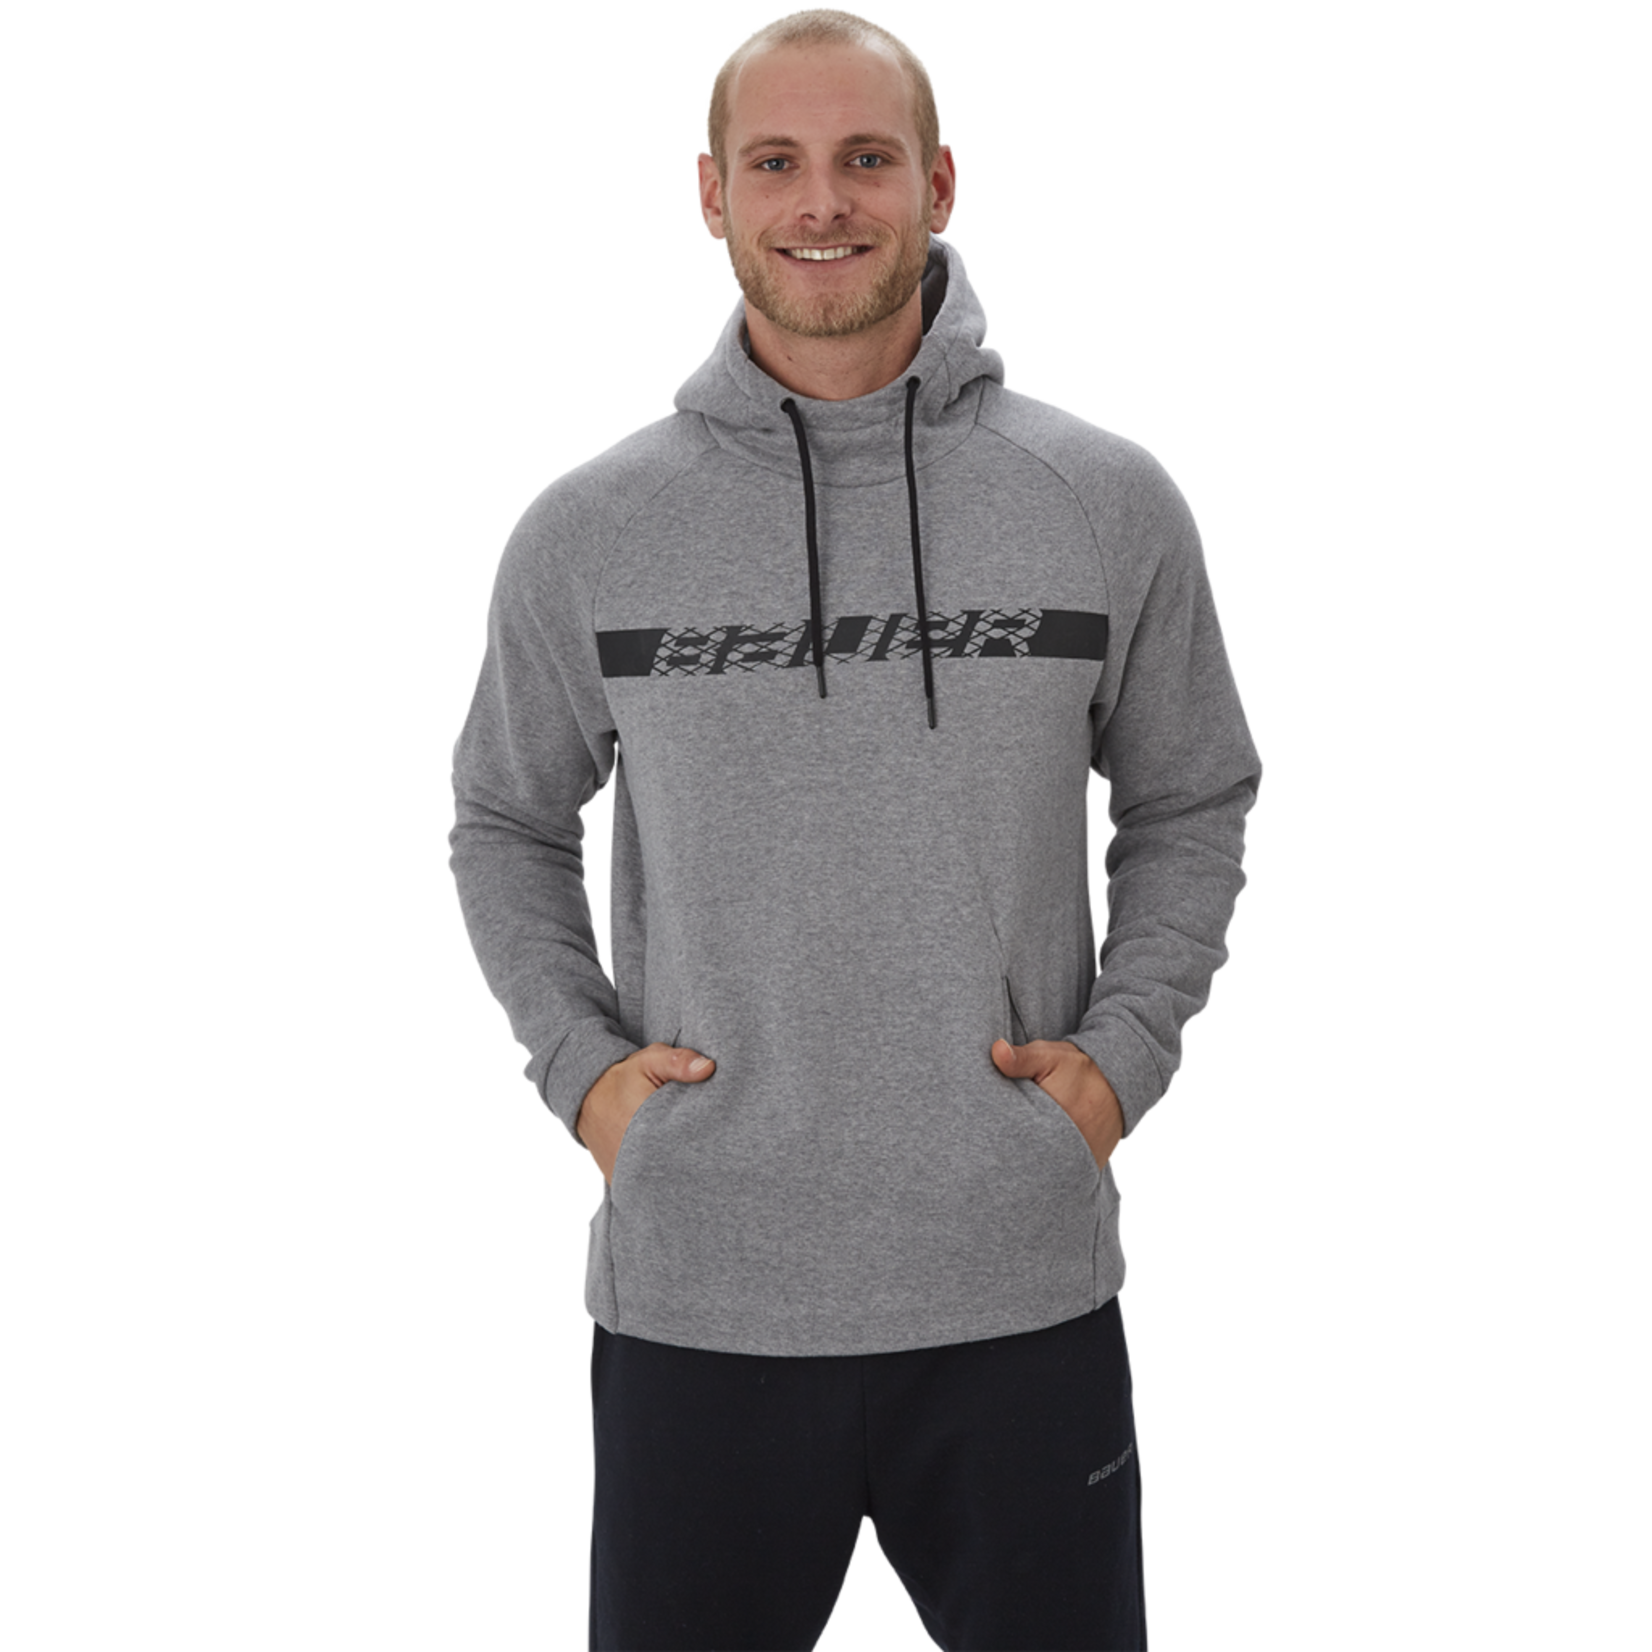 Bauer Bauer Hoodie, Perfect Graphic, Mens